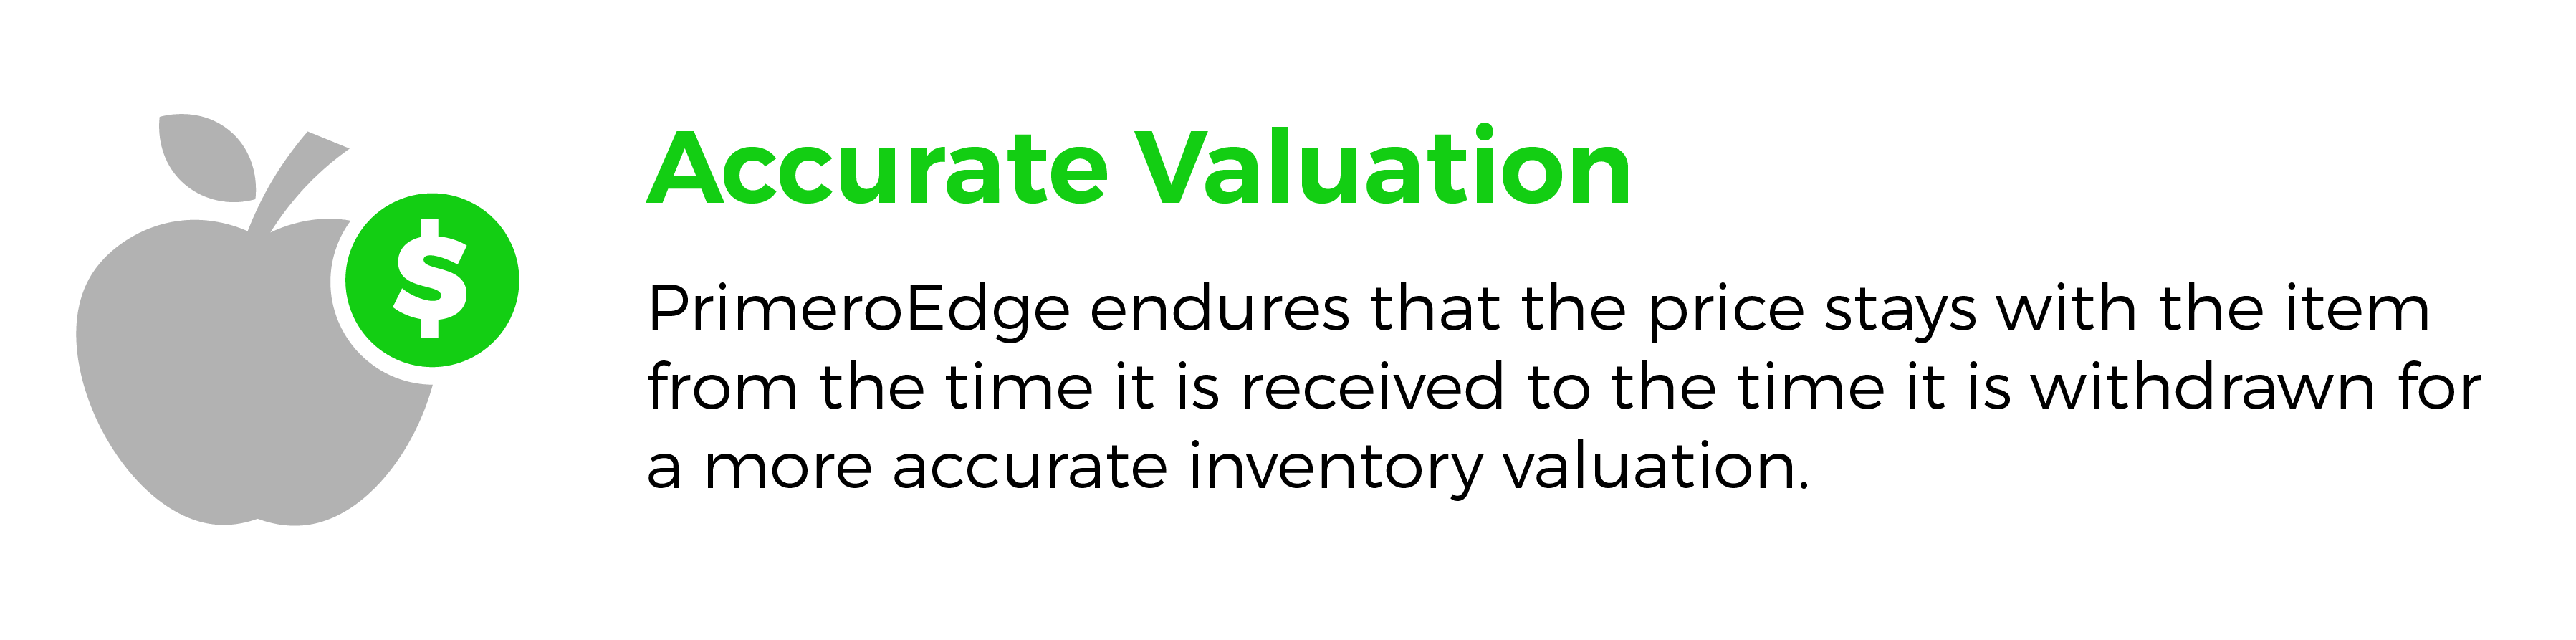 Accurate Valuation-01